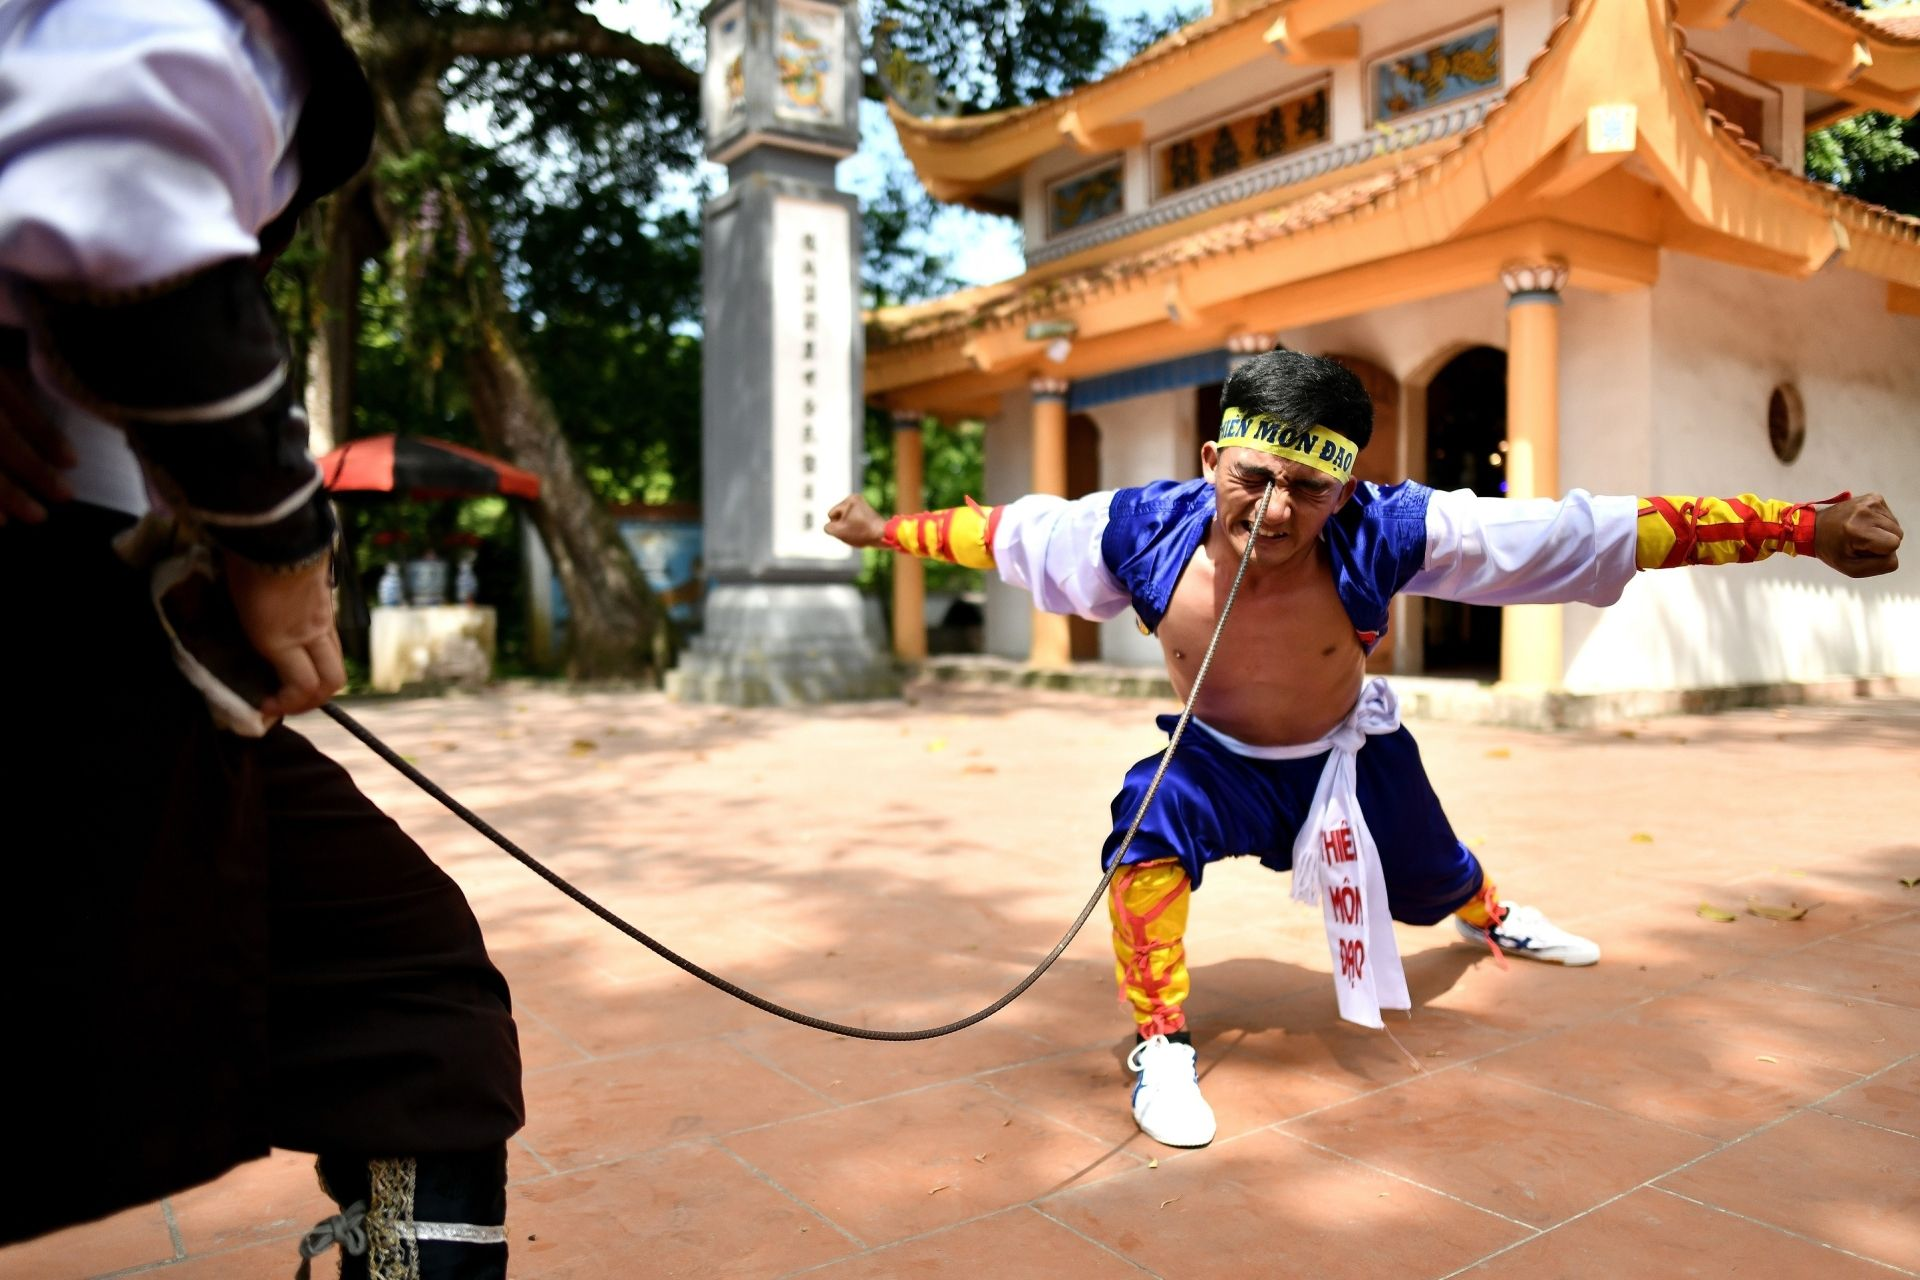 This photograph taken on June 7, 2020 shows Le Van Thang, 28, student of the centuries-old martial art of Thien Mon Dao, bending a construction rebar against his eye socket inside the Bach Linh temple compound at Du Xa Thuong village in Hanoi. - An increasing number of Vietnamese are finding refuge in the centuries-old martial art Thien Mon Dao, which grew out of a need to protect the country from invaders but now offers a route to mental wellbeing in the rapidly changing Communist nation. (Photo by Manan V